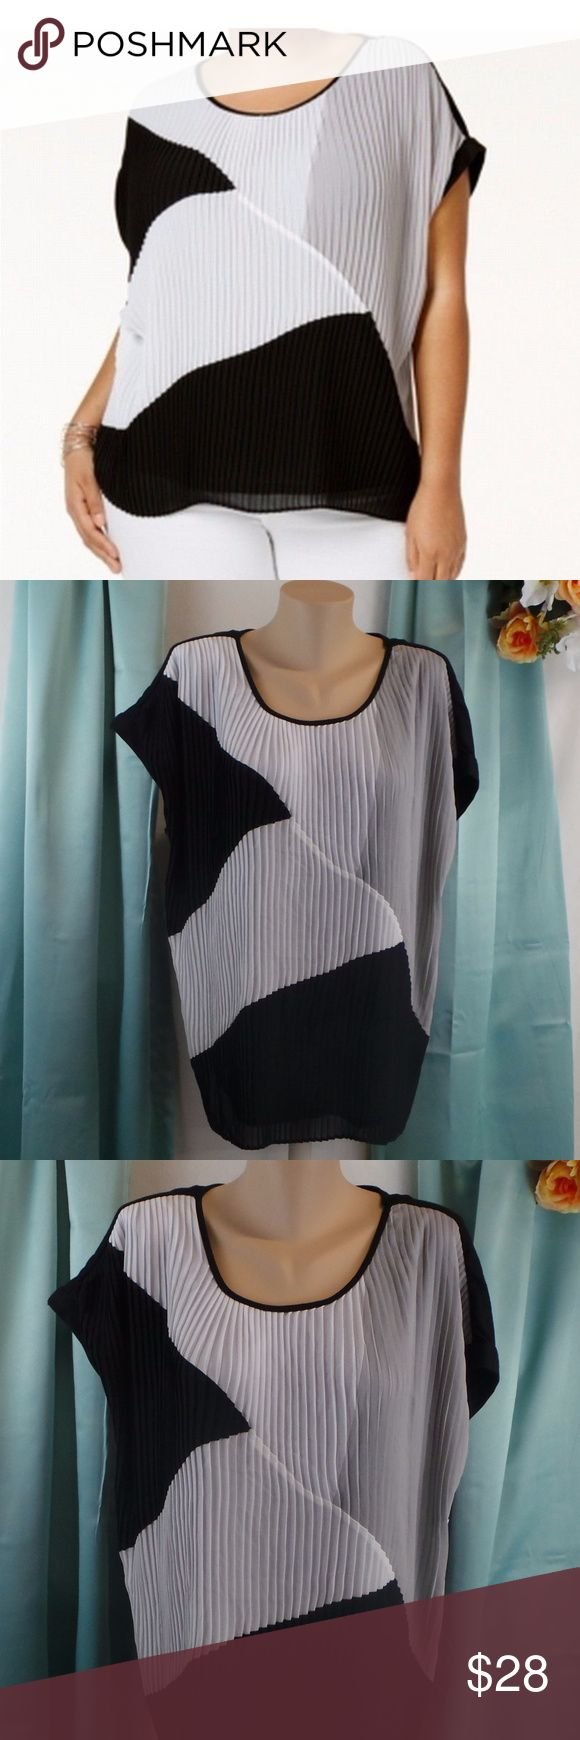 Pleat-Front Colorblock Blouse Accordion Neutral Brand: NY Collection  Color: Black, Gray, White Condition: New with tags  Product Details:  Size Type: Plus Size (Women's): 1X Lined: Yes Sleeve Style: Batwing, Dolman Style: Blouse Occasion: Casual Material: 100% Polyester   704974222627 AD15 NY Collection Tops Blouses